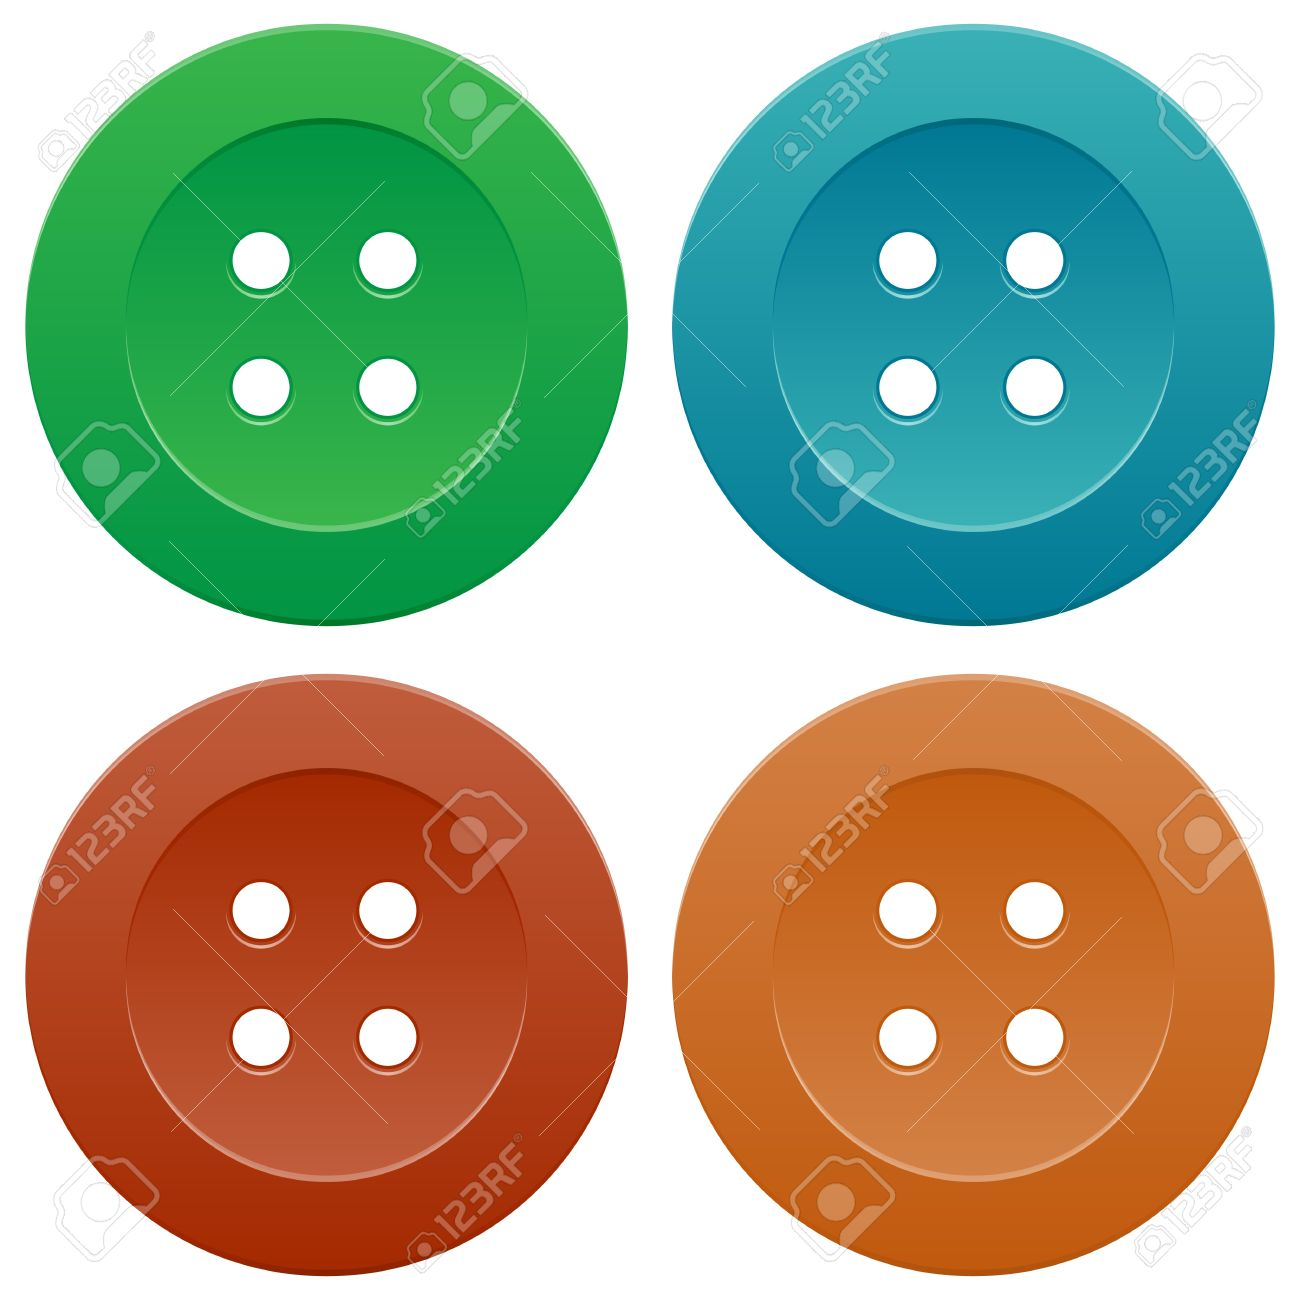 Group of Bright Colorful Sewing Buttons on White Background Stock Vector - 14930050